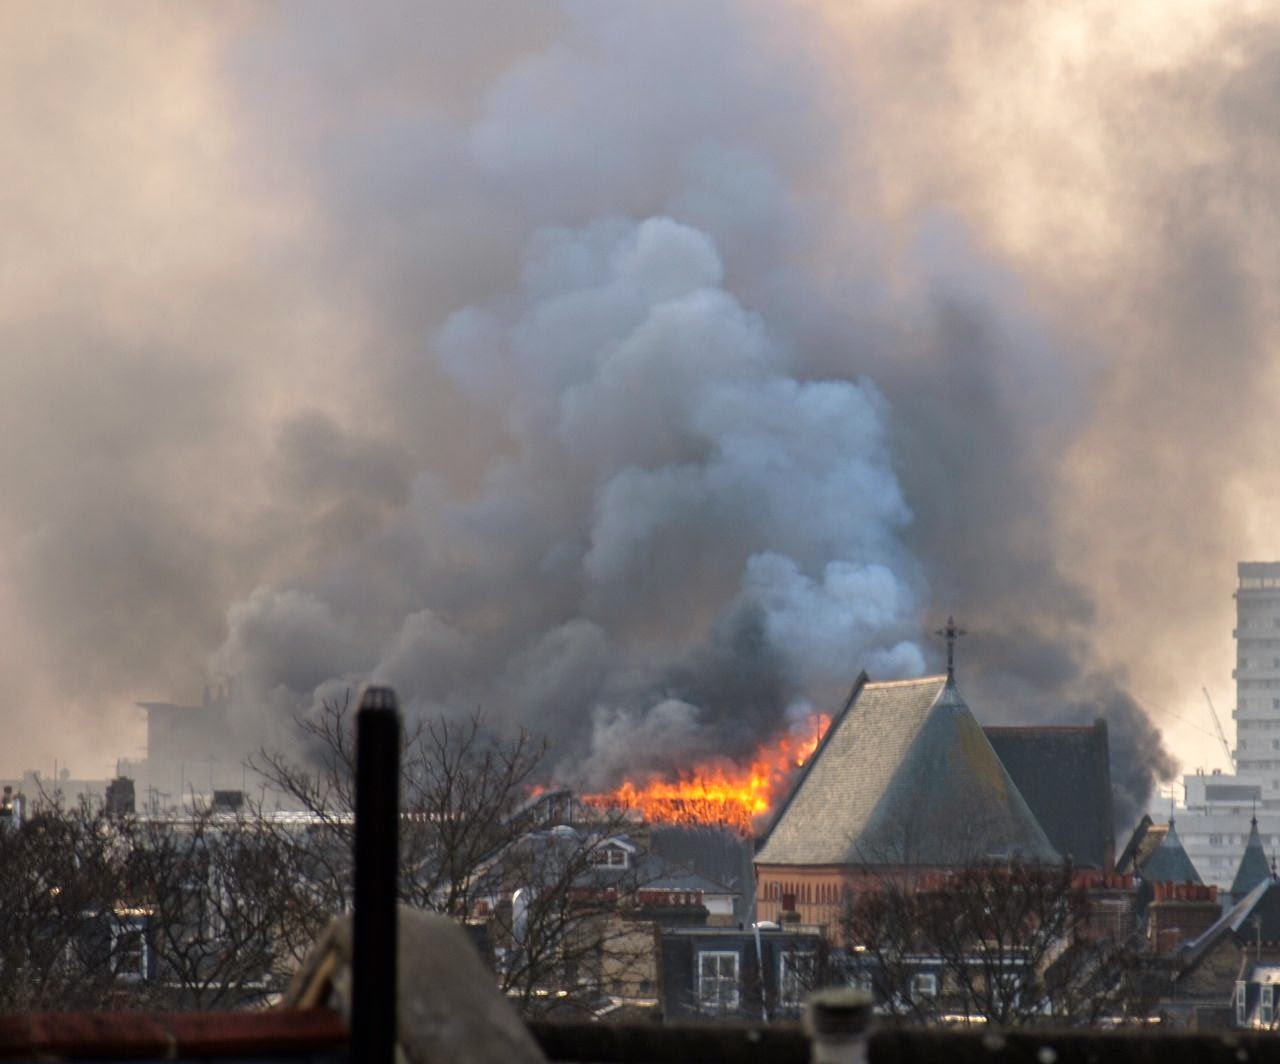 Fire rips through the roof of Battersea Arts Centre's great hall, Friday 13th 2015